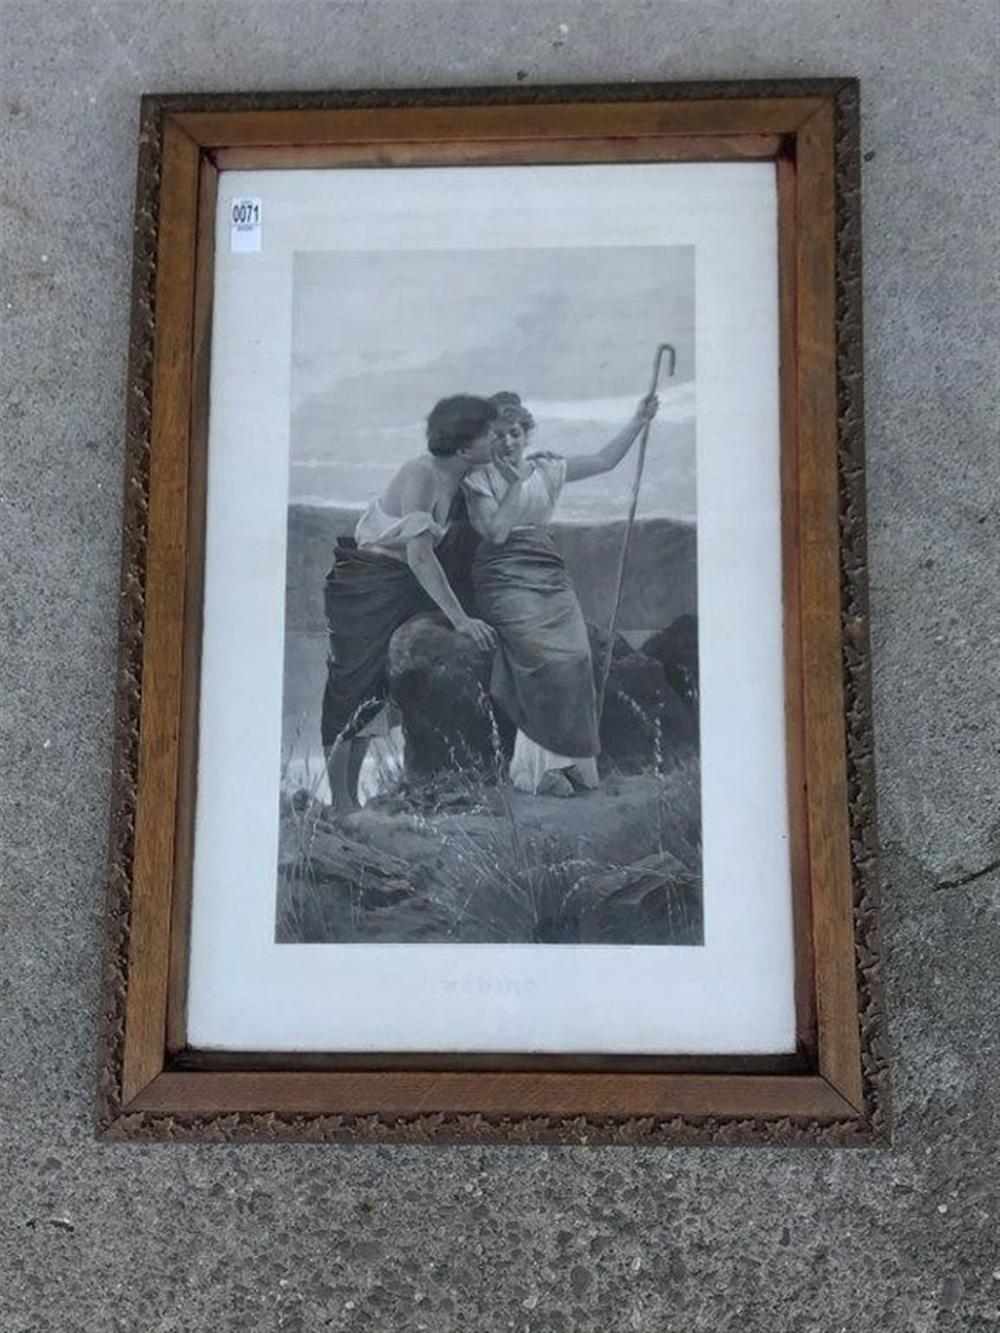 "VICTORIAN PRINT TITLED WOOING IN ORIGINAL OAK FRAME, LONDON 1884,  FRAME MEASURES 34"" X 24"".  FROM LOCAL KINGSTON, N.Y. ESTATE."